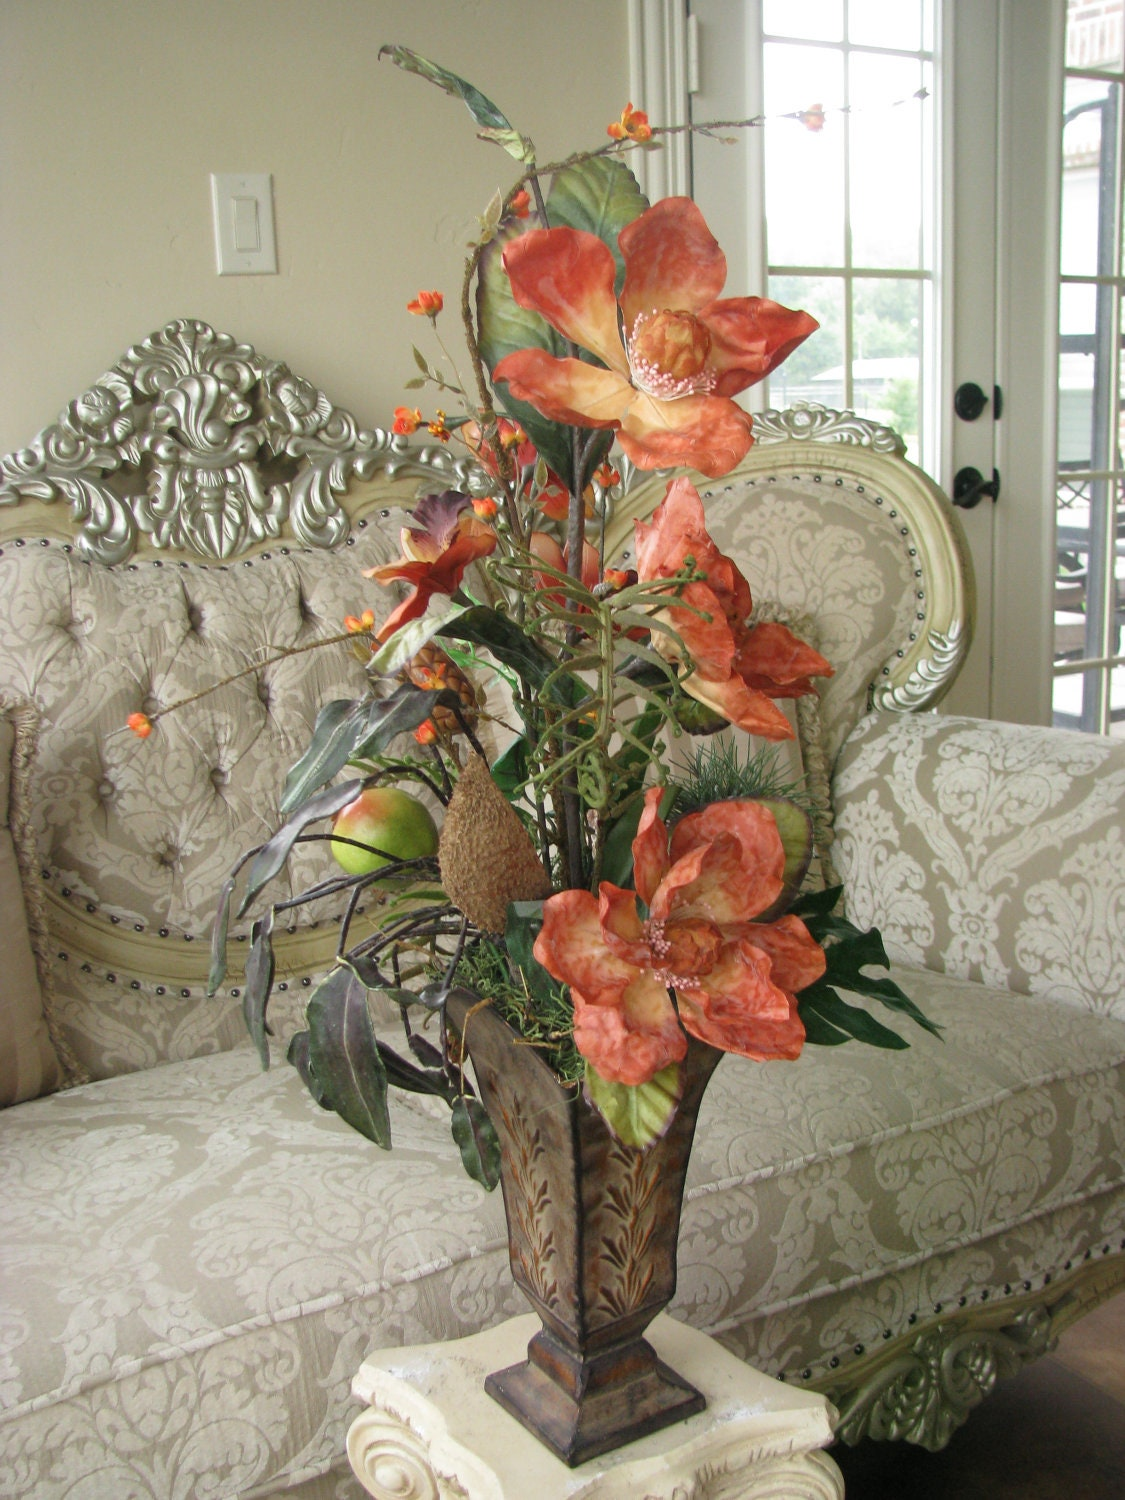 Sale 40 OFF Silk Flower Arrangement Orange EXOTIC in Tall : ilfullxfull357702896f4f2 from www.etsy.com size 1125 x 1500 jpeg 401kB